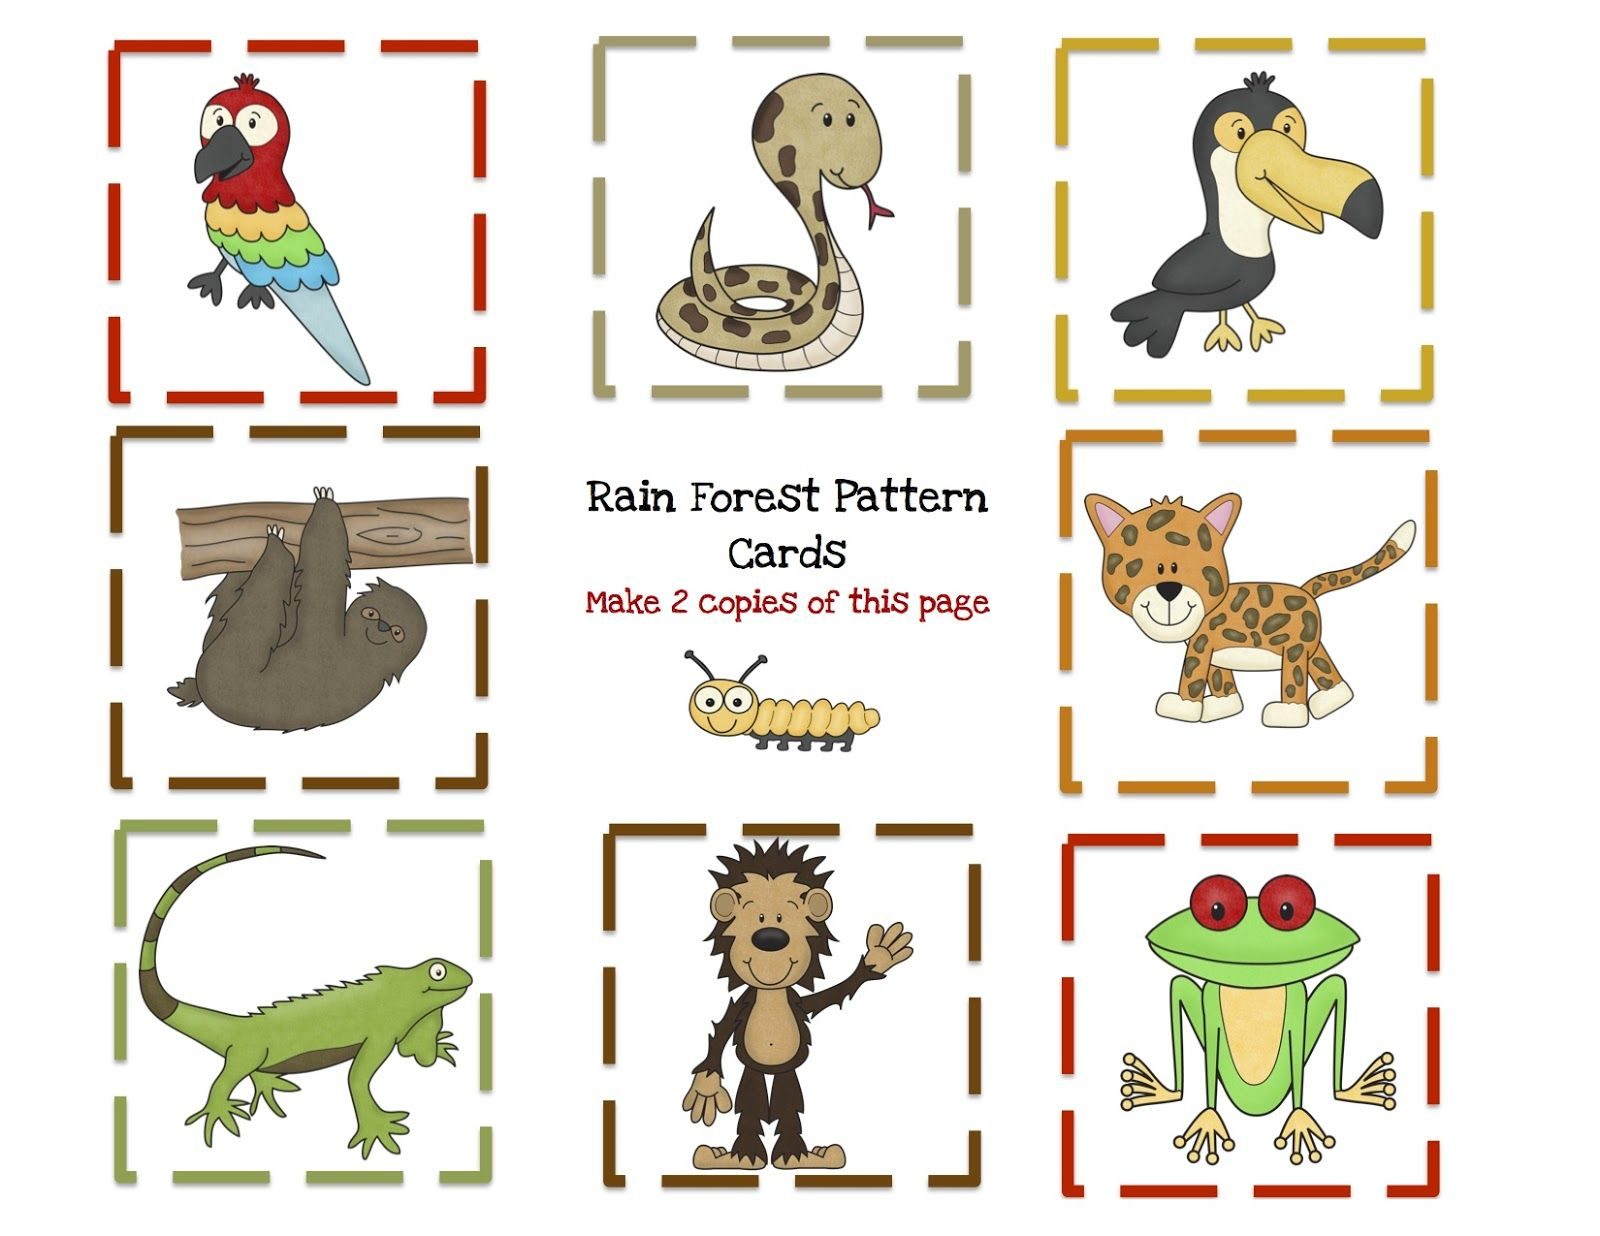 free printable rainforest pattern cards with 8 pattern templates to make